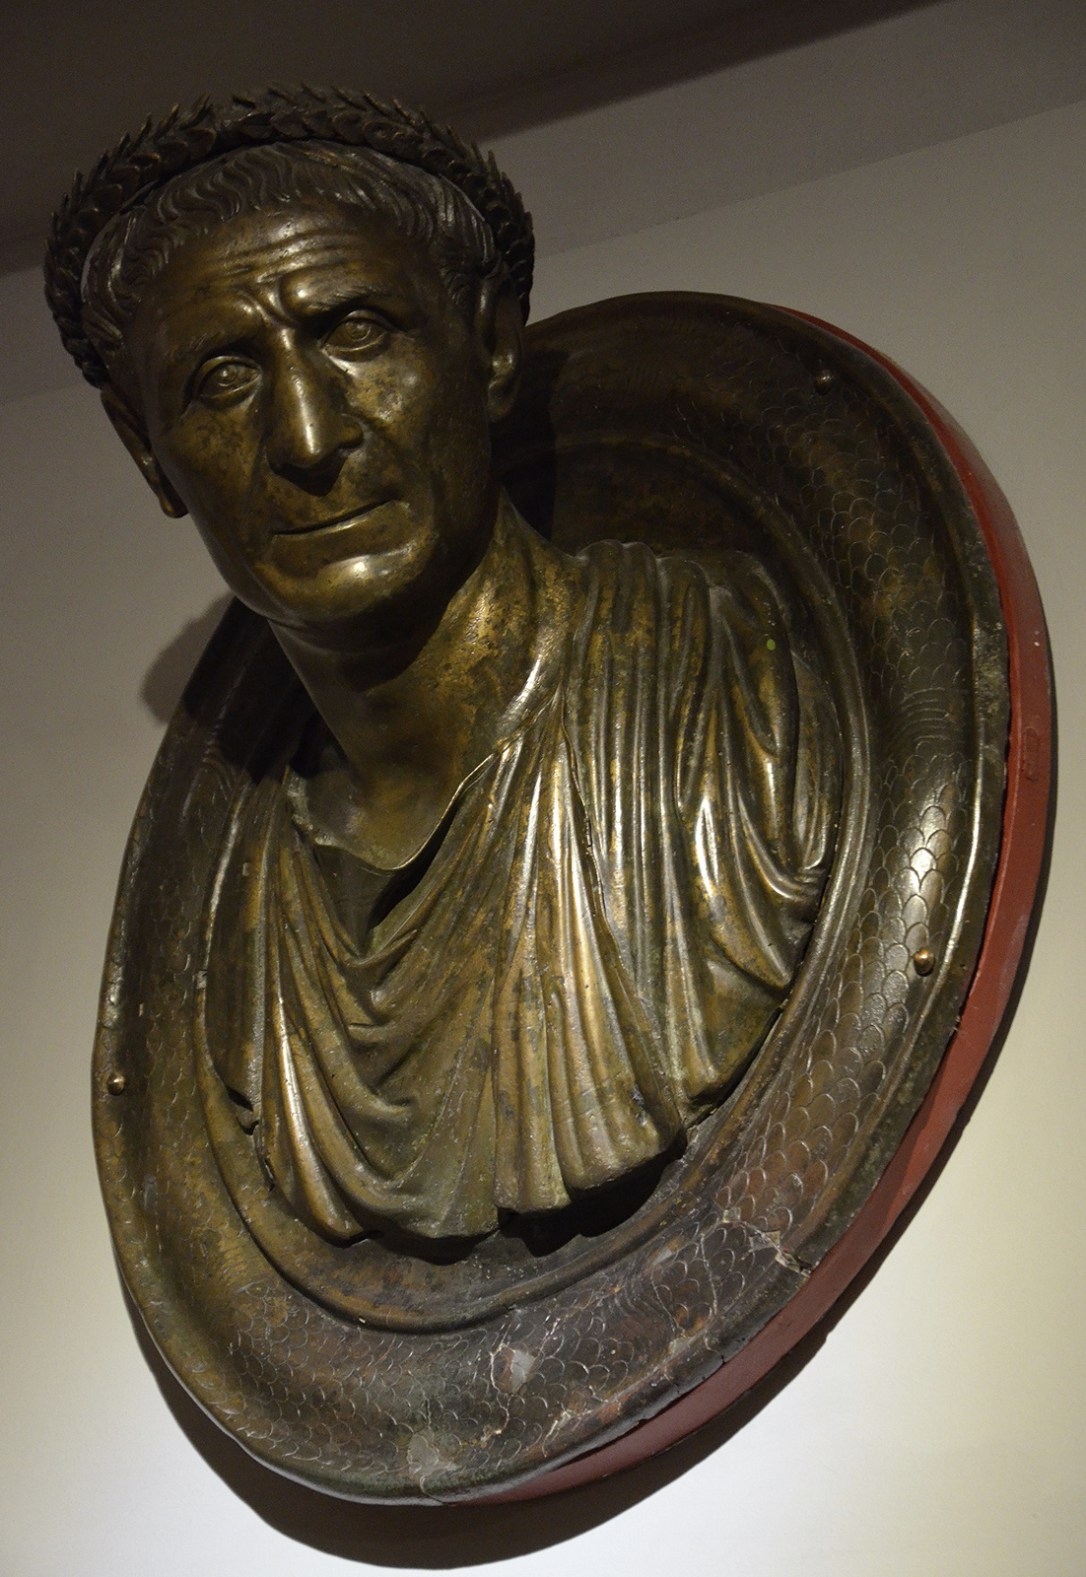 Round todo with bust of Ulpius Aelius Pompeianus, the Agonothetes of the sacred games of Ancyra, Hadrianic period (117-138 AD), discovered in 1950s during foundation excavations in Ankara, Museum of Anatolian Civilizations, Ankara